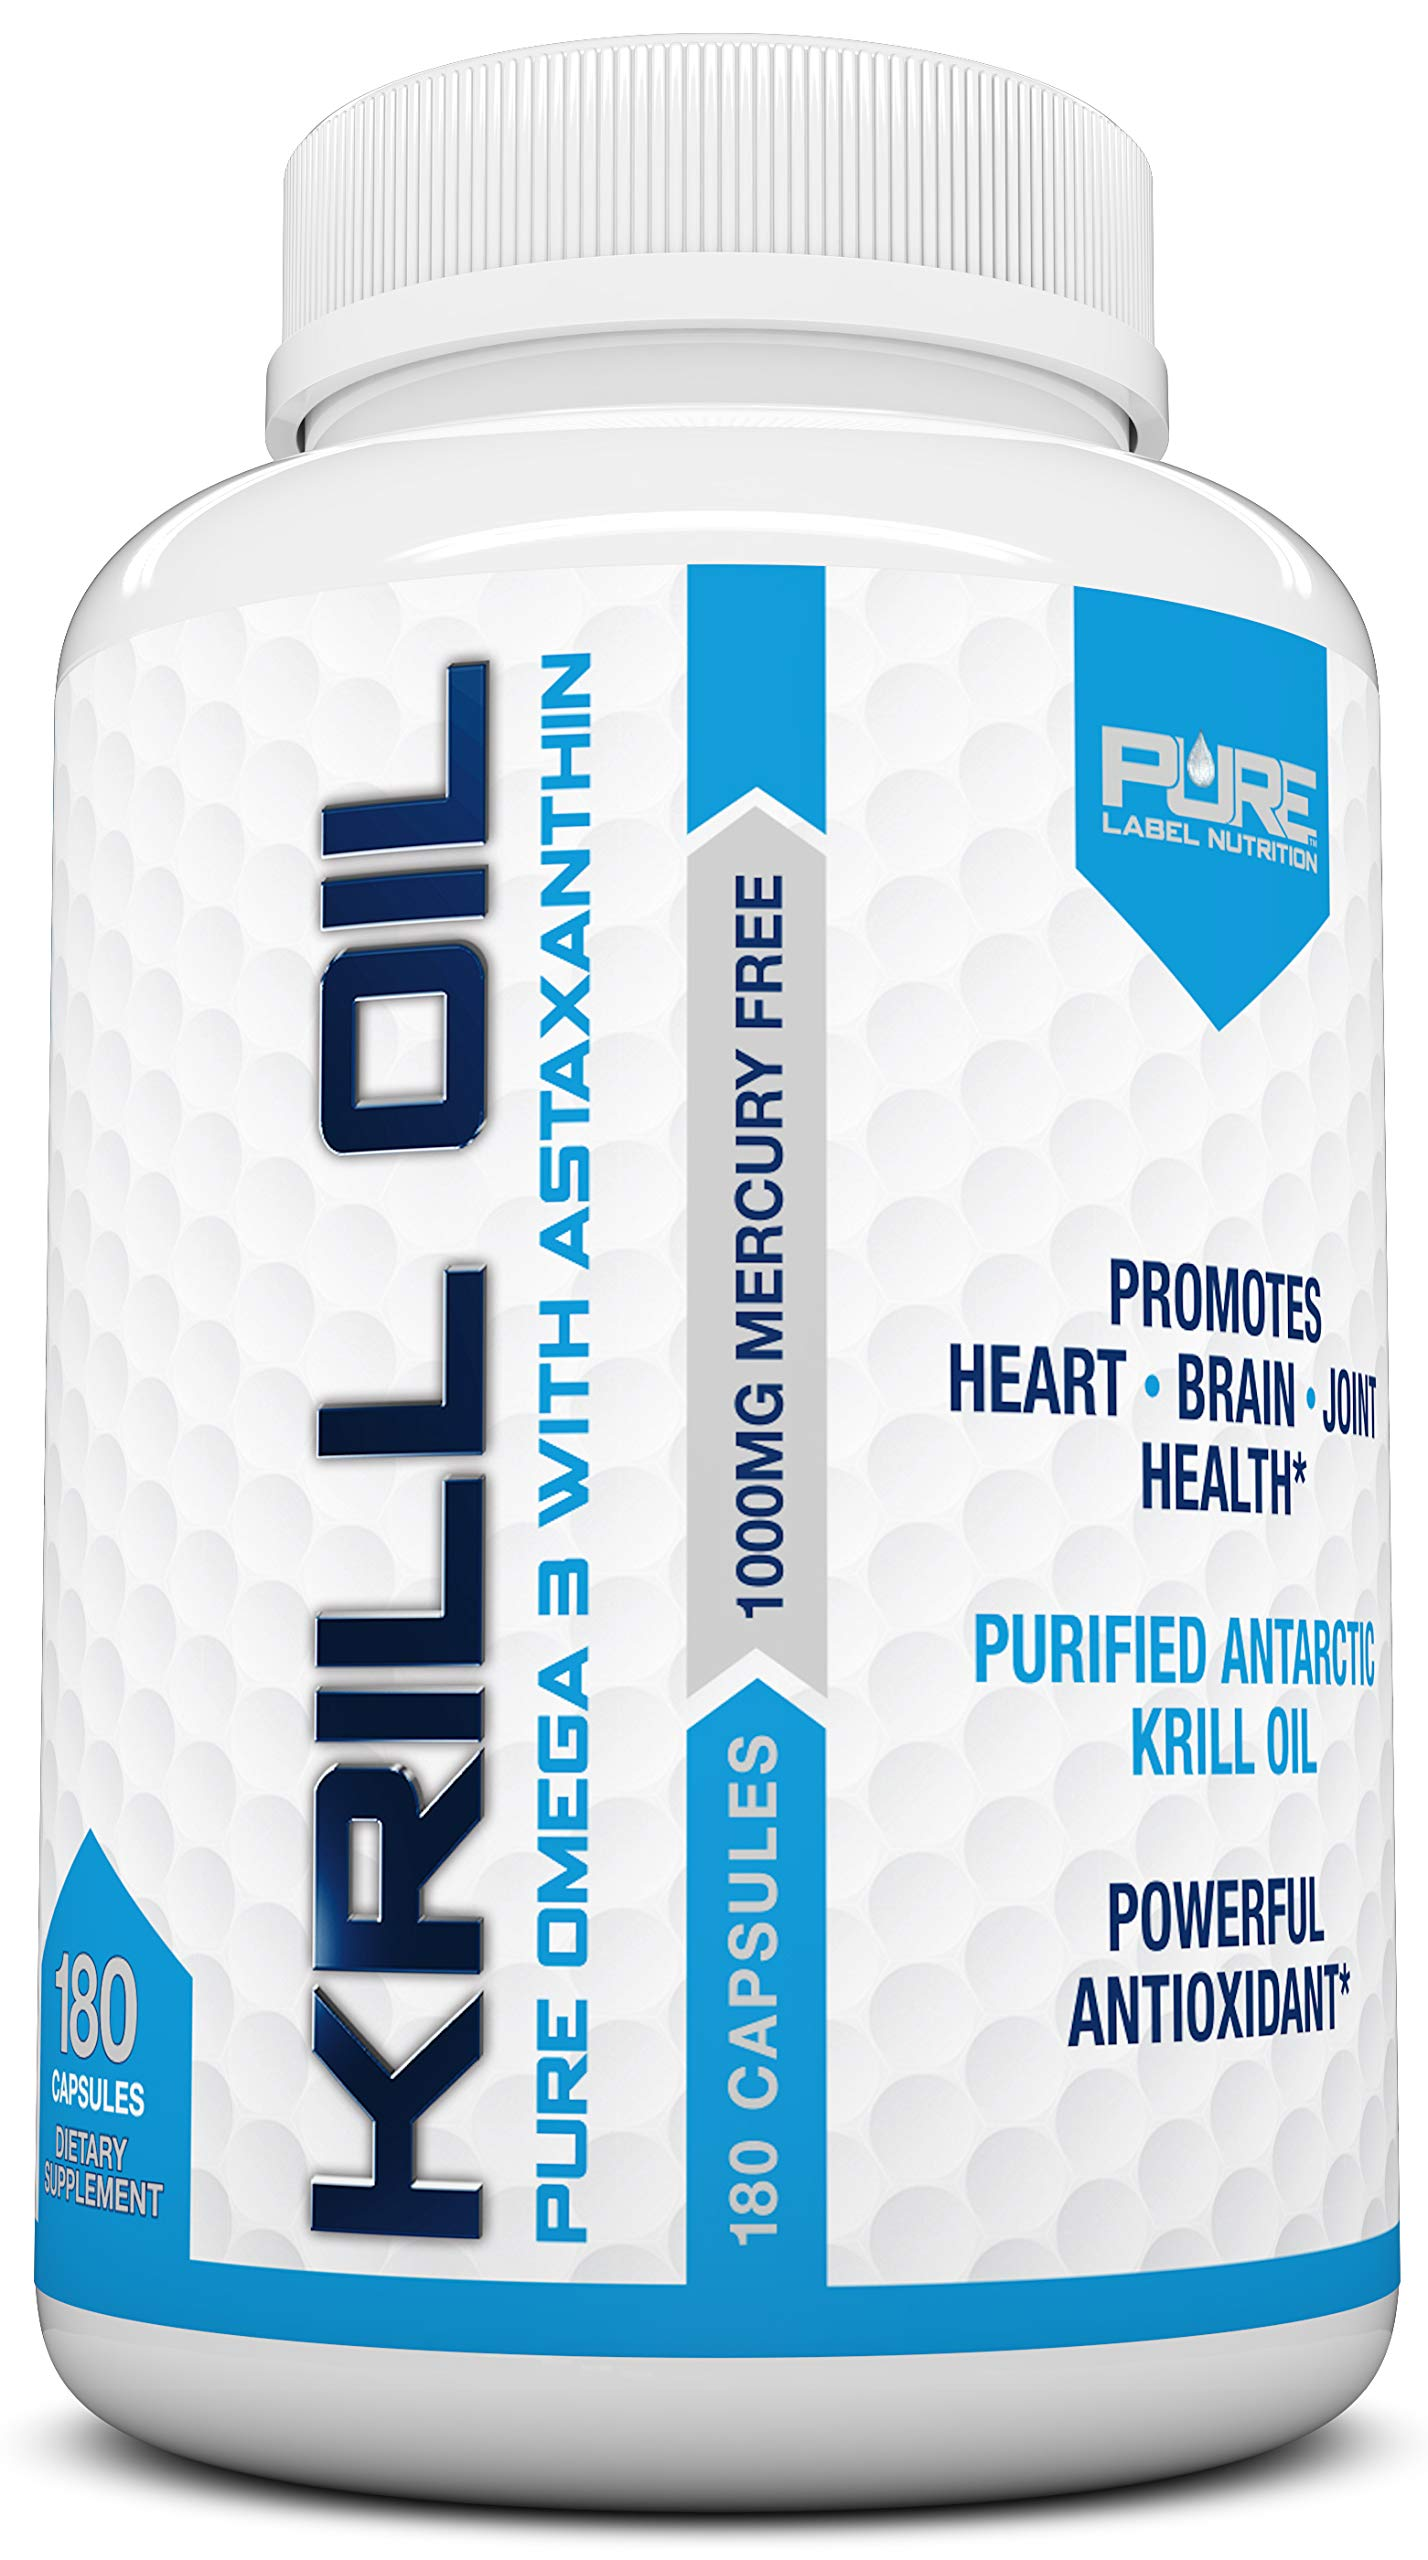 Krill Oil 1000mg with Astaxanthin 180 Caps Omega 3 6 9 - EPA DHA - 100% Purified, Mercury Free and Wild Caught - Non GMO - Gluten Free - Pure Krill Oil - Mega Dose Phospholipids (180 Capsules) by Pure Label Nutrition